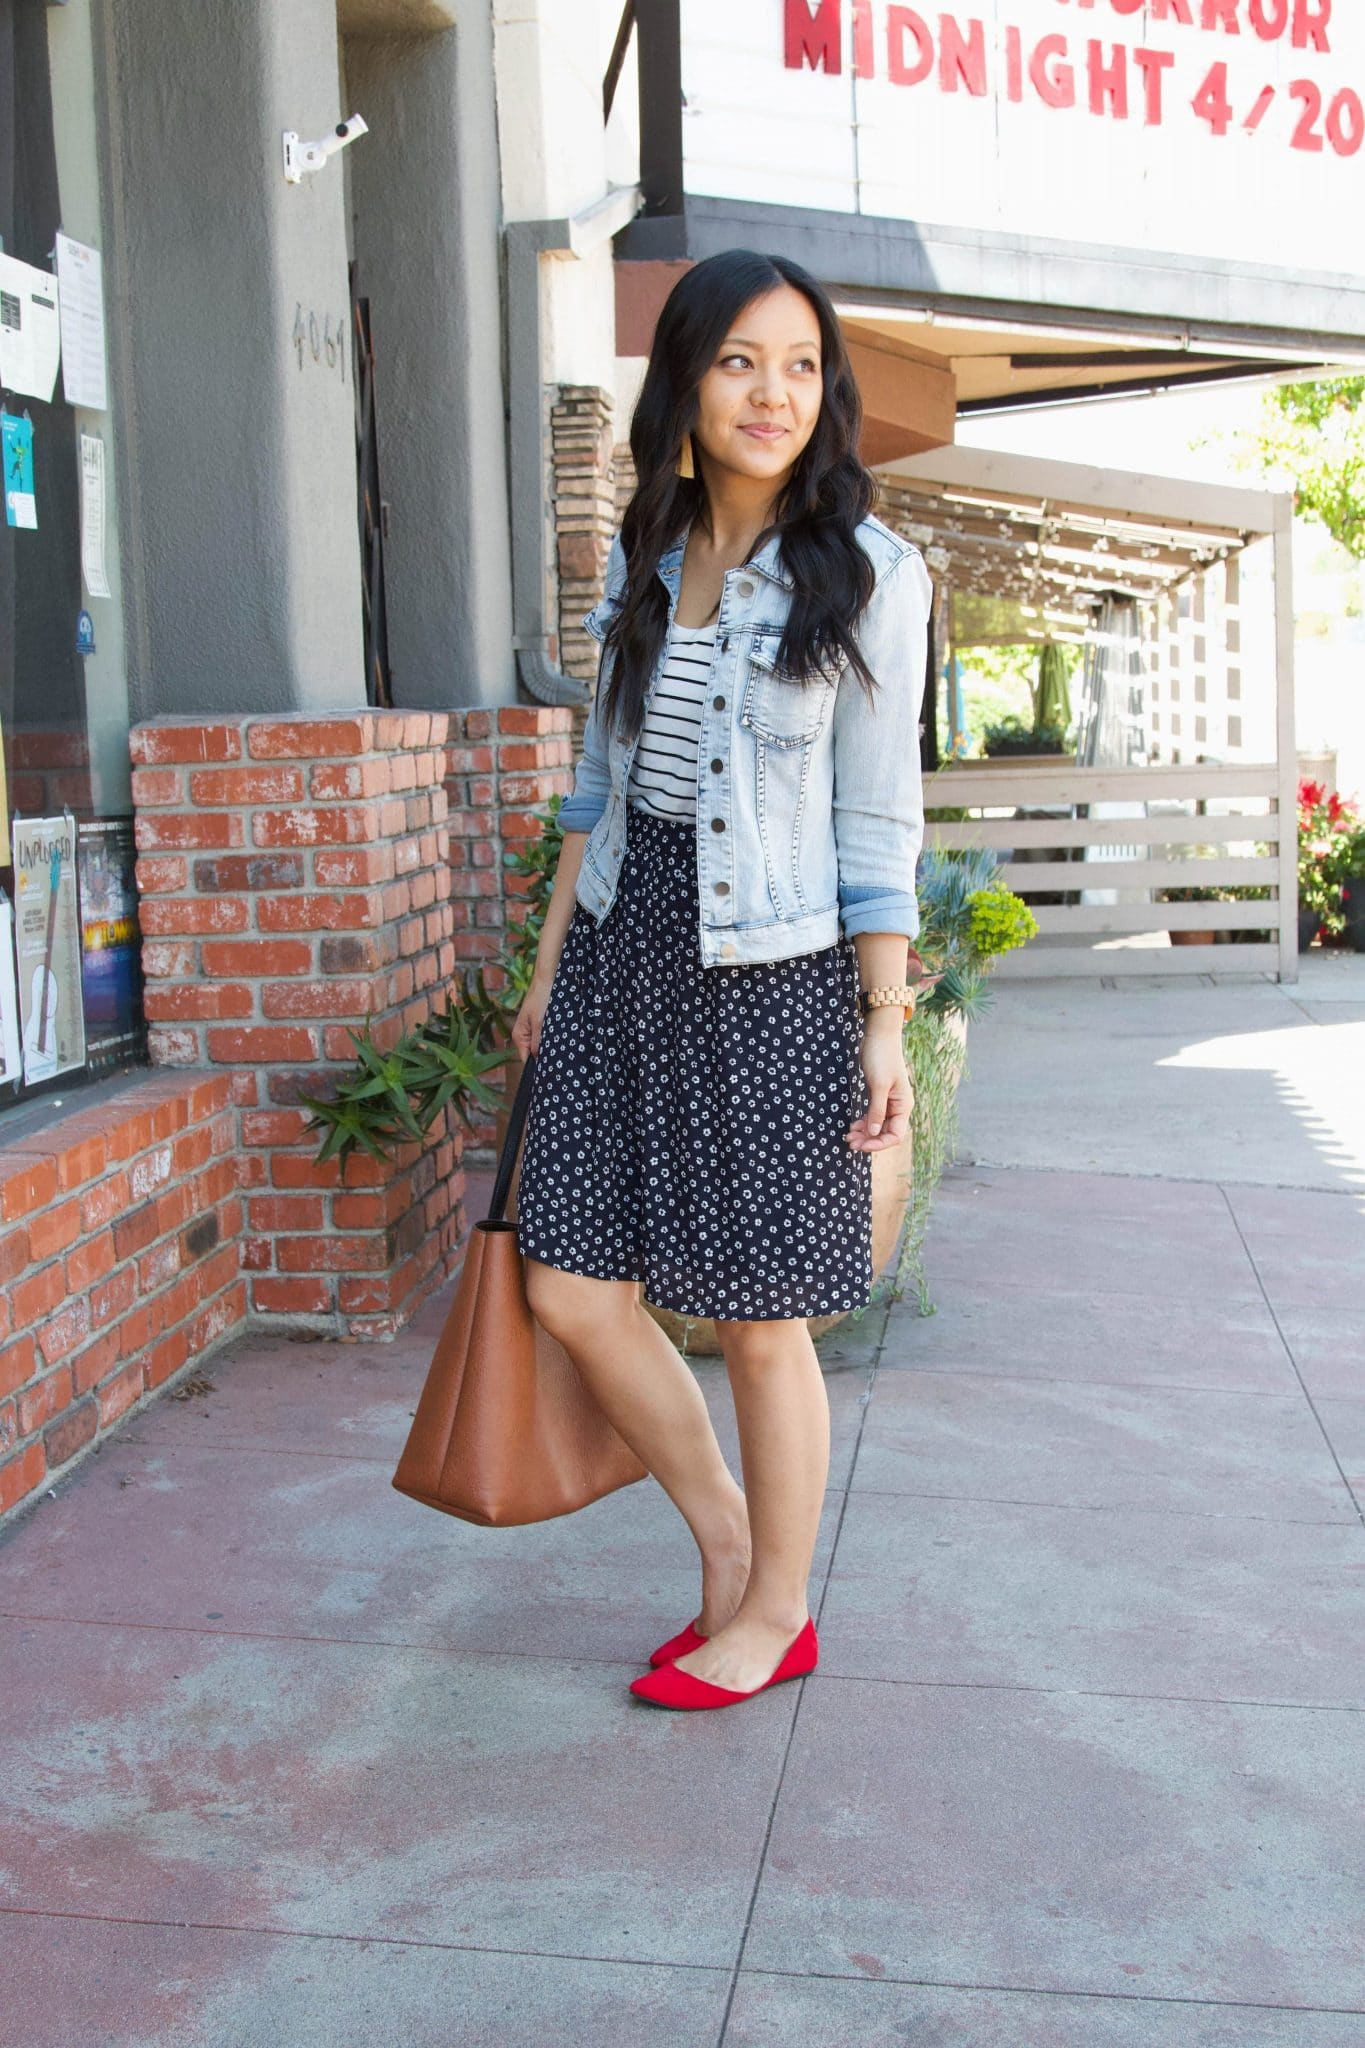 Spring Skirt Outfit: striped tee + denim jacket + navy printed skirt + red flats + cognac tote + tan leather earrings